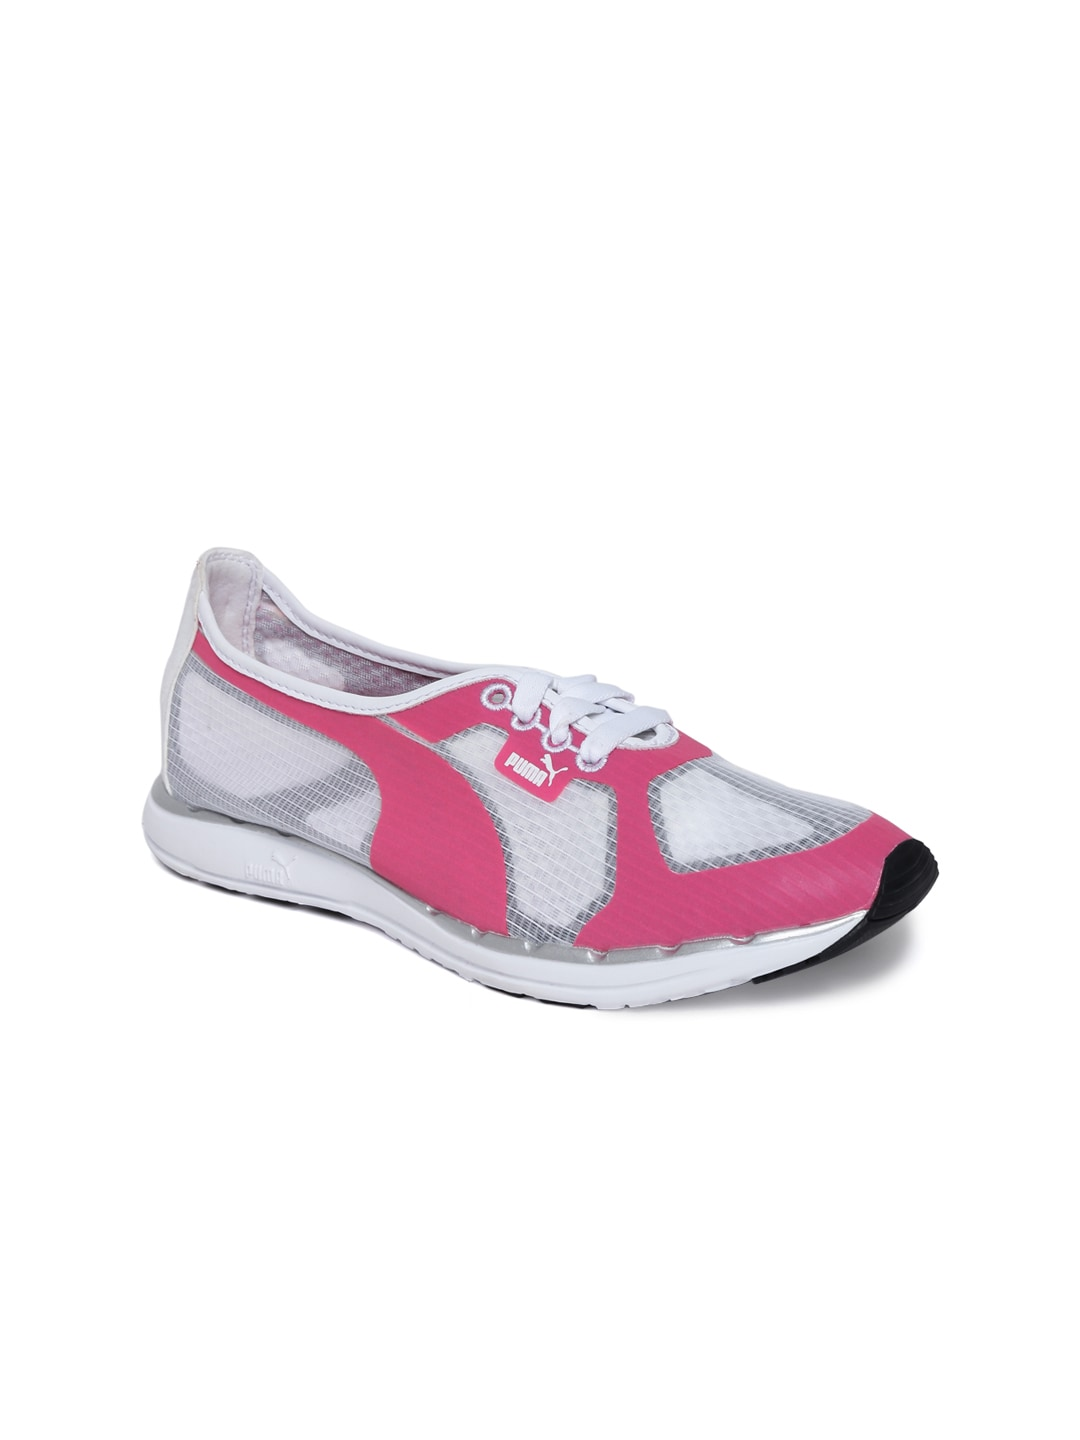 Puma Shoes: Shop for Puma Shoes For Men online at best prices in India. Choose from a wide range of Puma Shoes at wheelpokemon7nk.cf Get Free 1 or 2 day delivery with Amazon Prime, EMI offers, Cash on Delivery on eligible purchases.